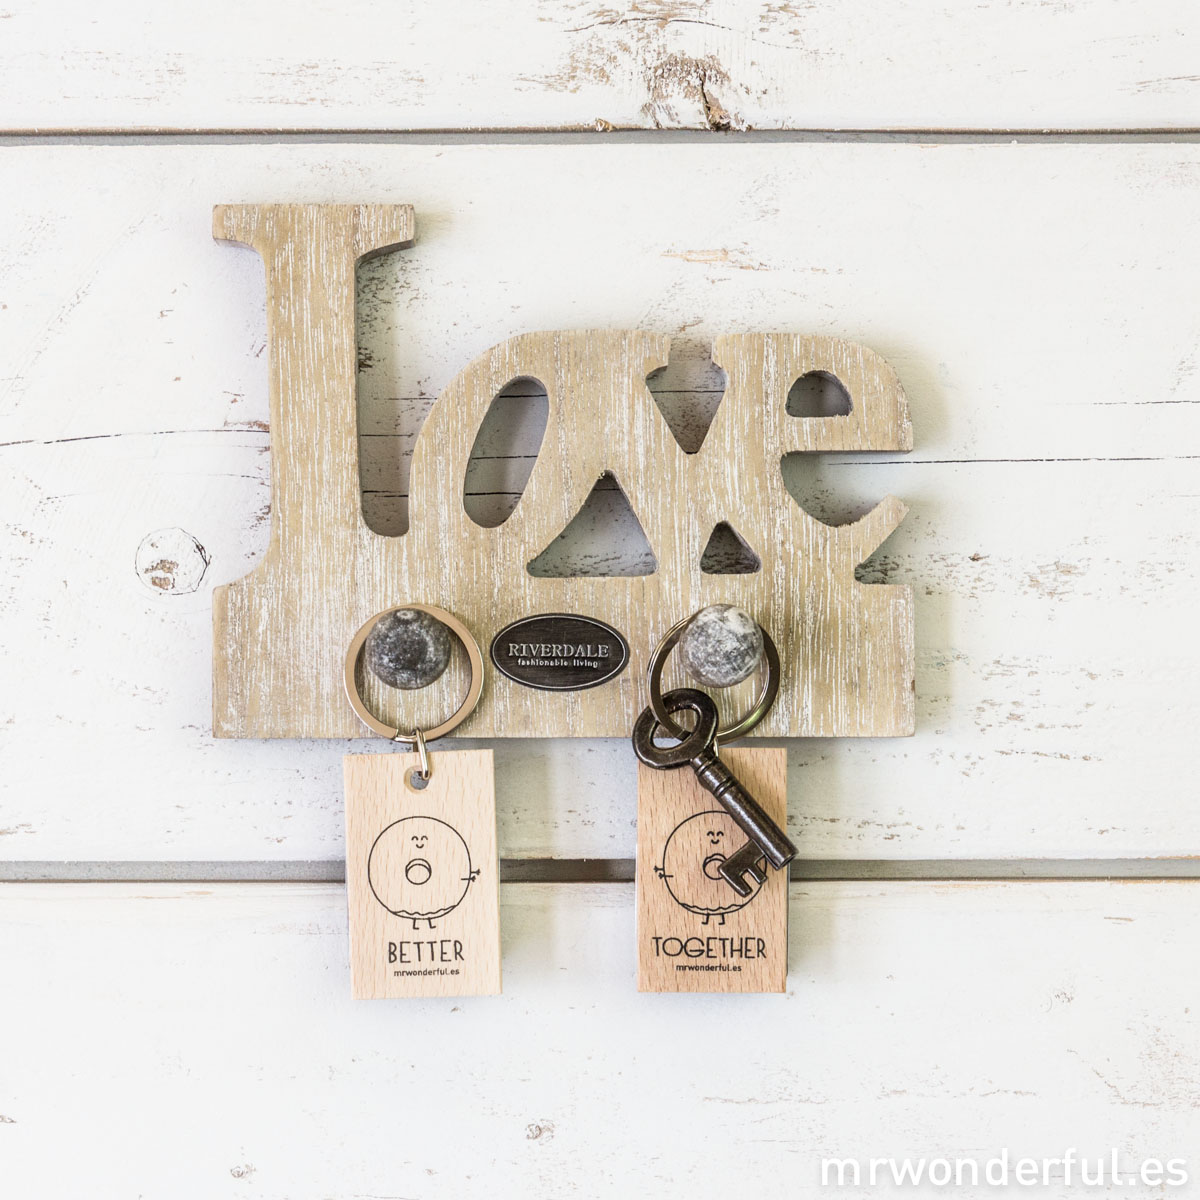 mrwonderful_005946-13_colgader_madera-natural_love-2